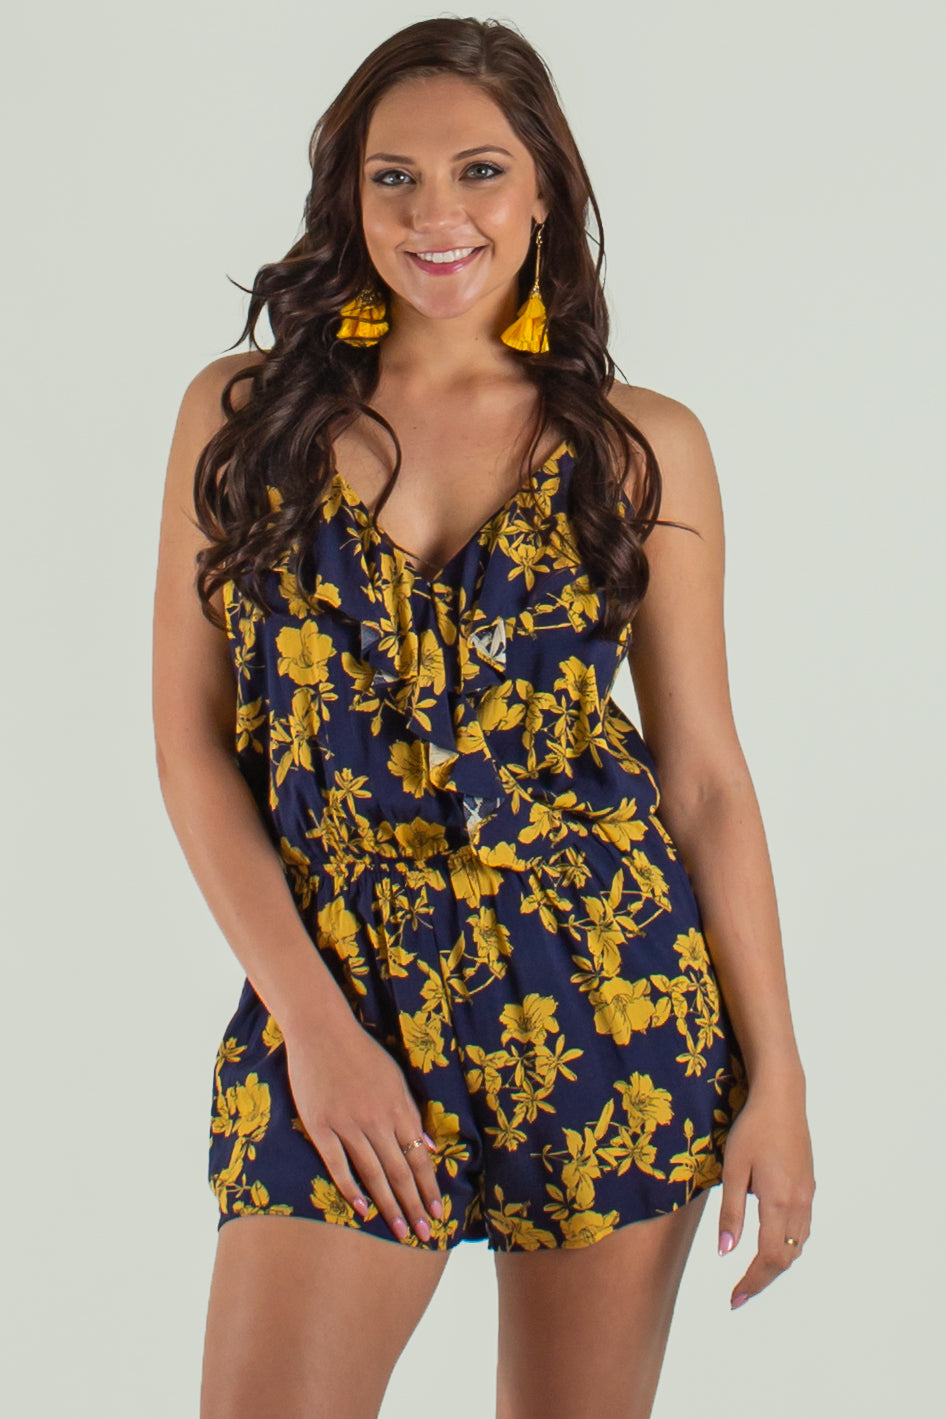 Blue floral romper, Blue and yellow romper, blue yellow romper blue yellow floral romper, blue and yellow floral romper